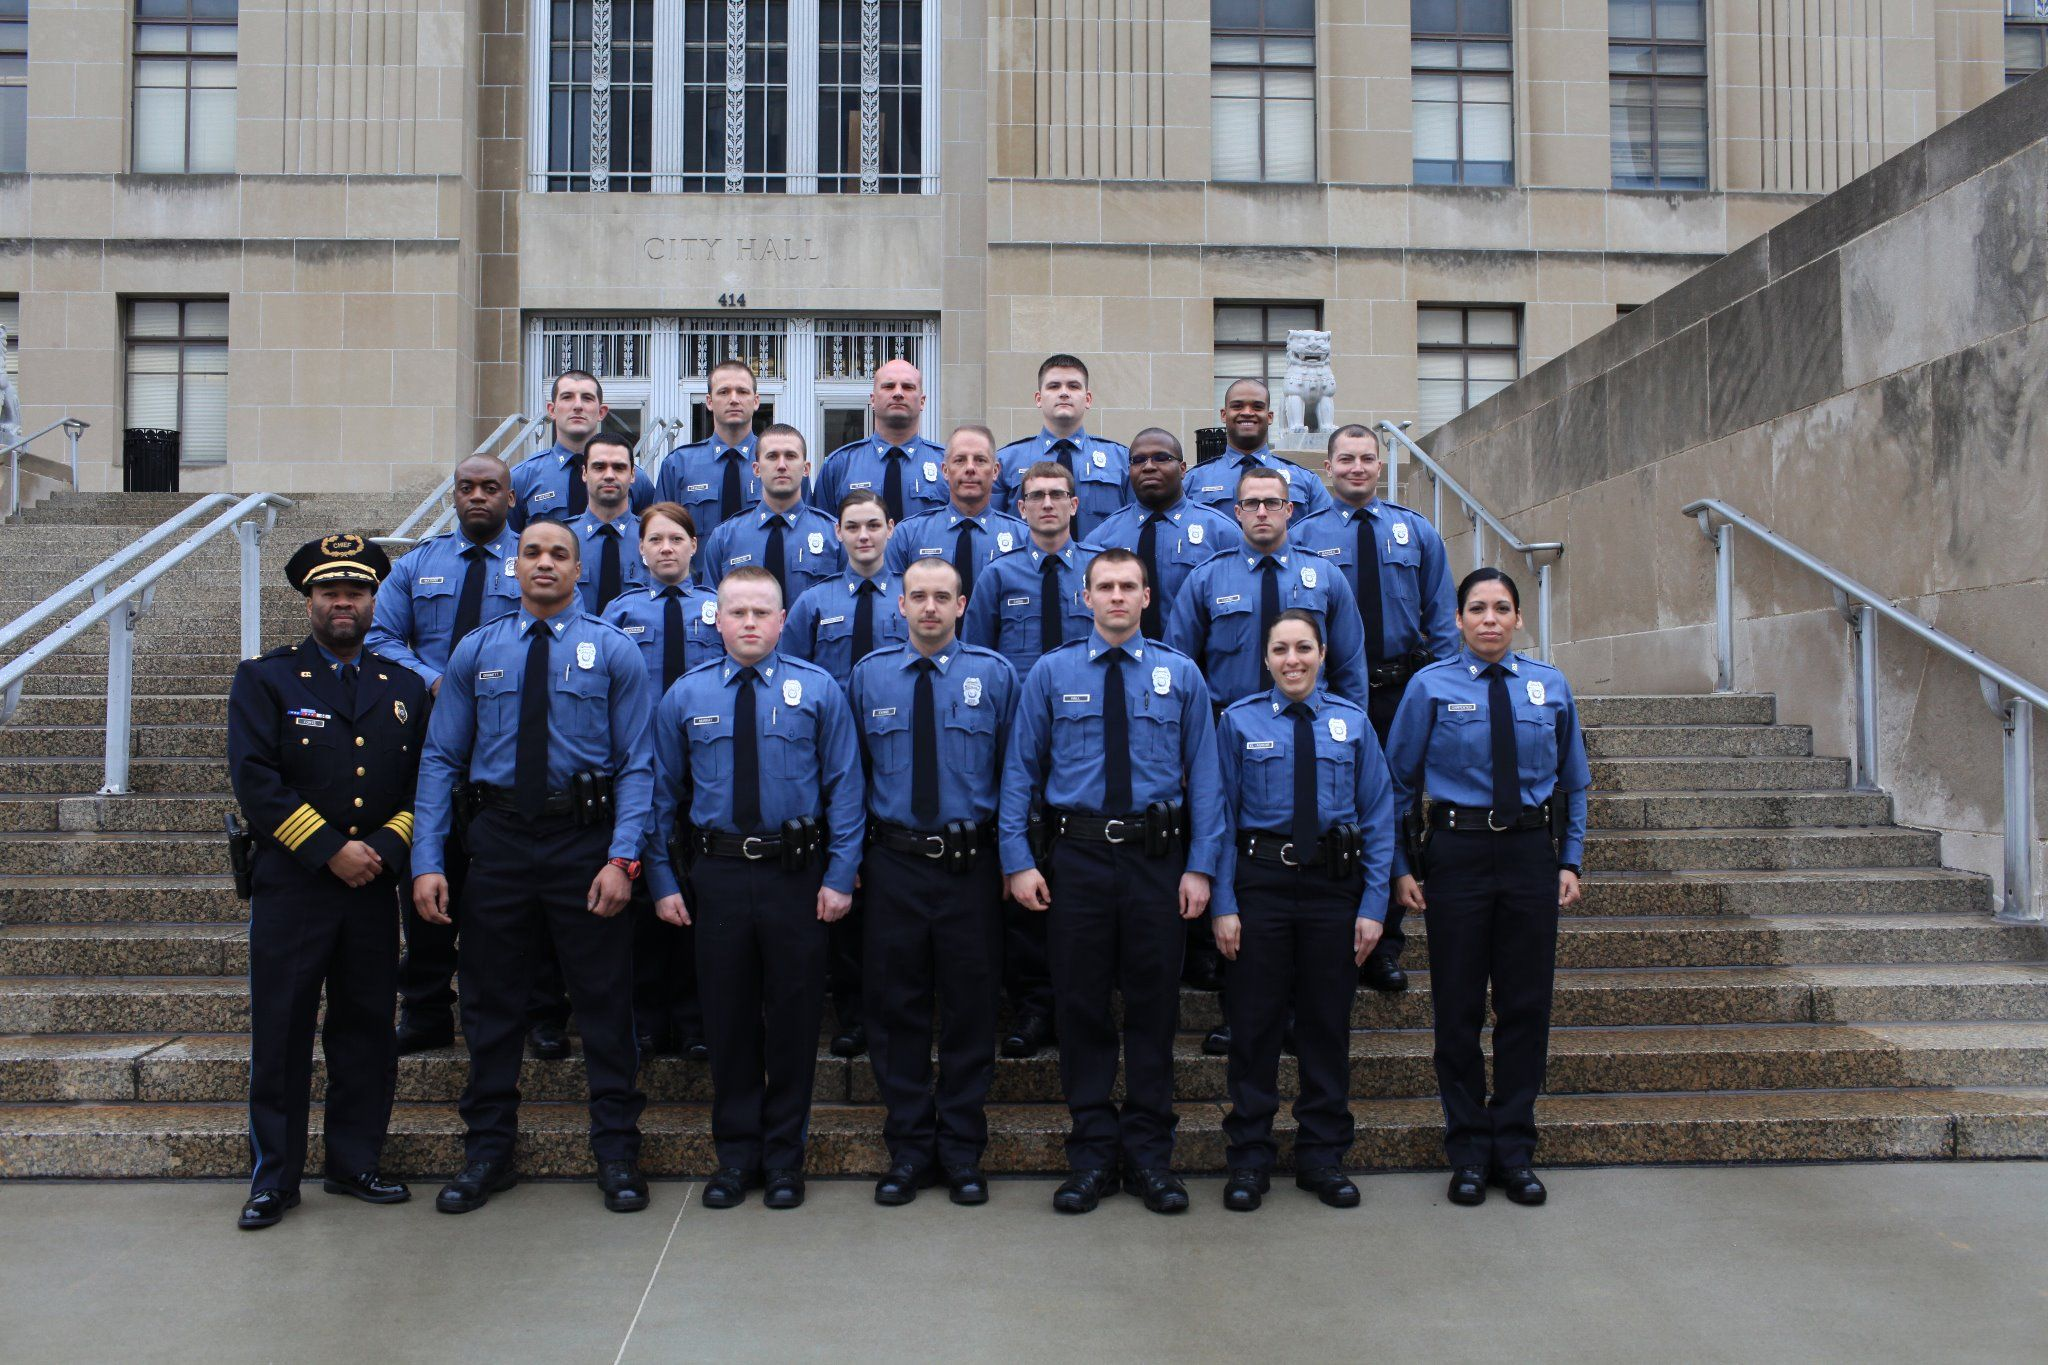 Meet Your Newest Kansas City Missouri Police Officers Their